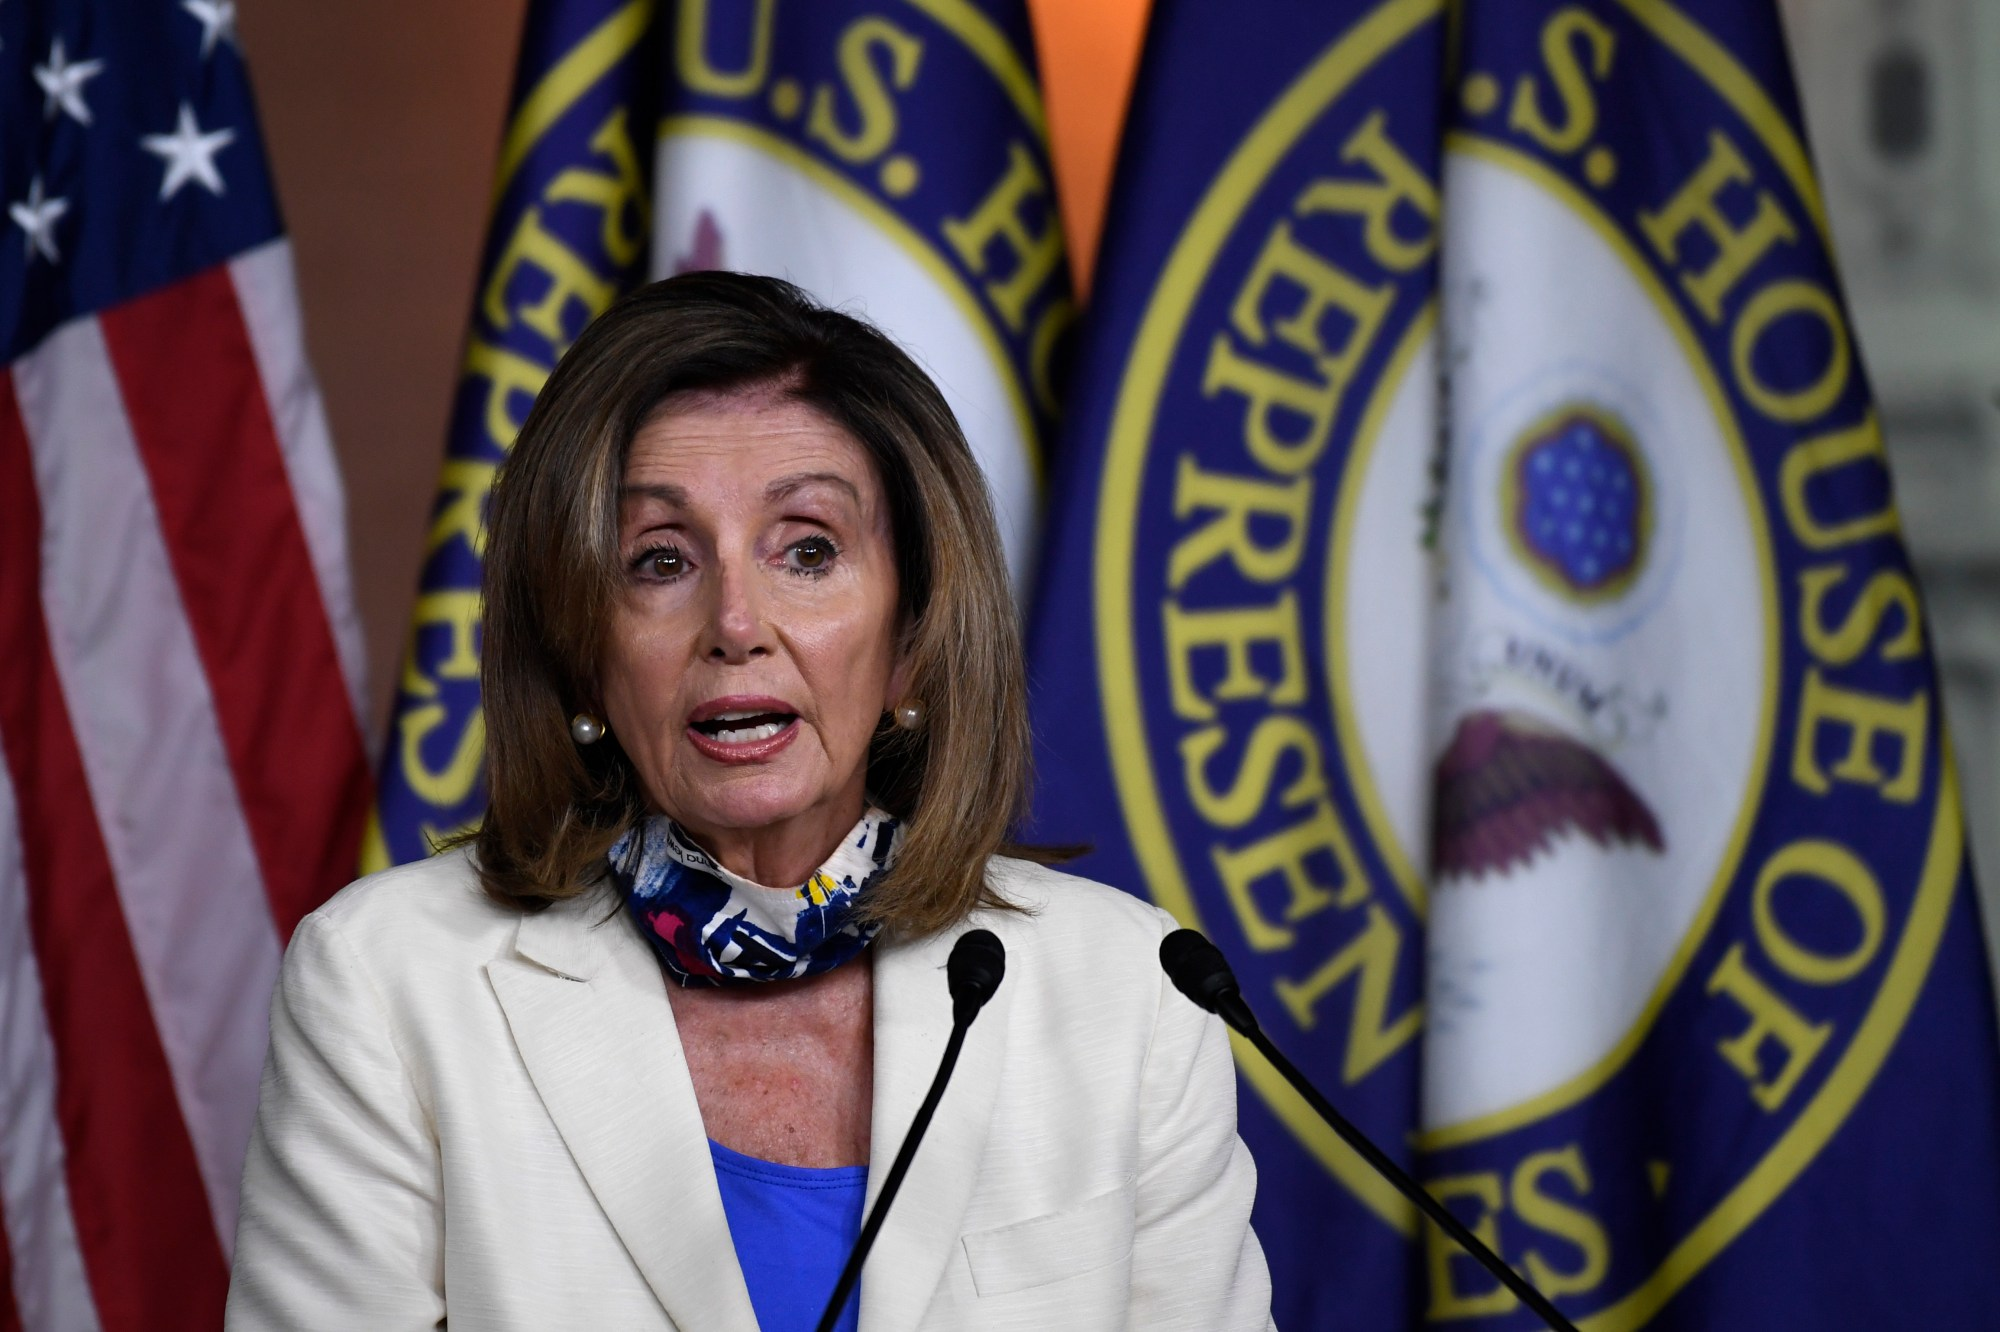 House Speaker Nancy Pelosi speaks during a news conference on Capitol Hill on July 16, 2020. (Susan Walsh/Associated Press)